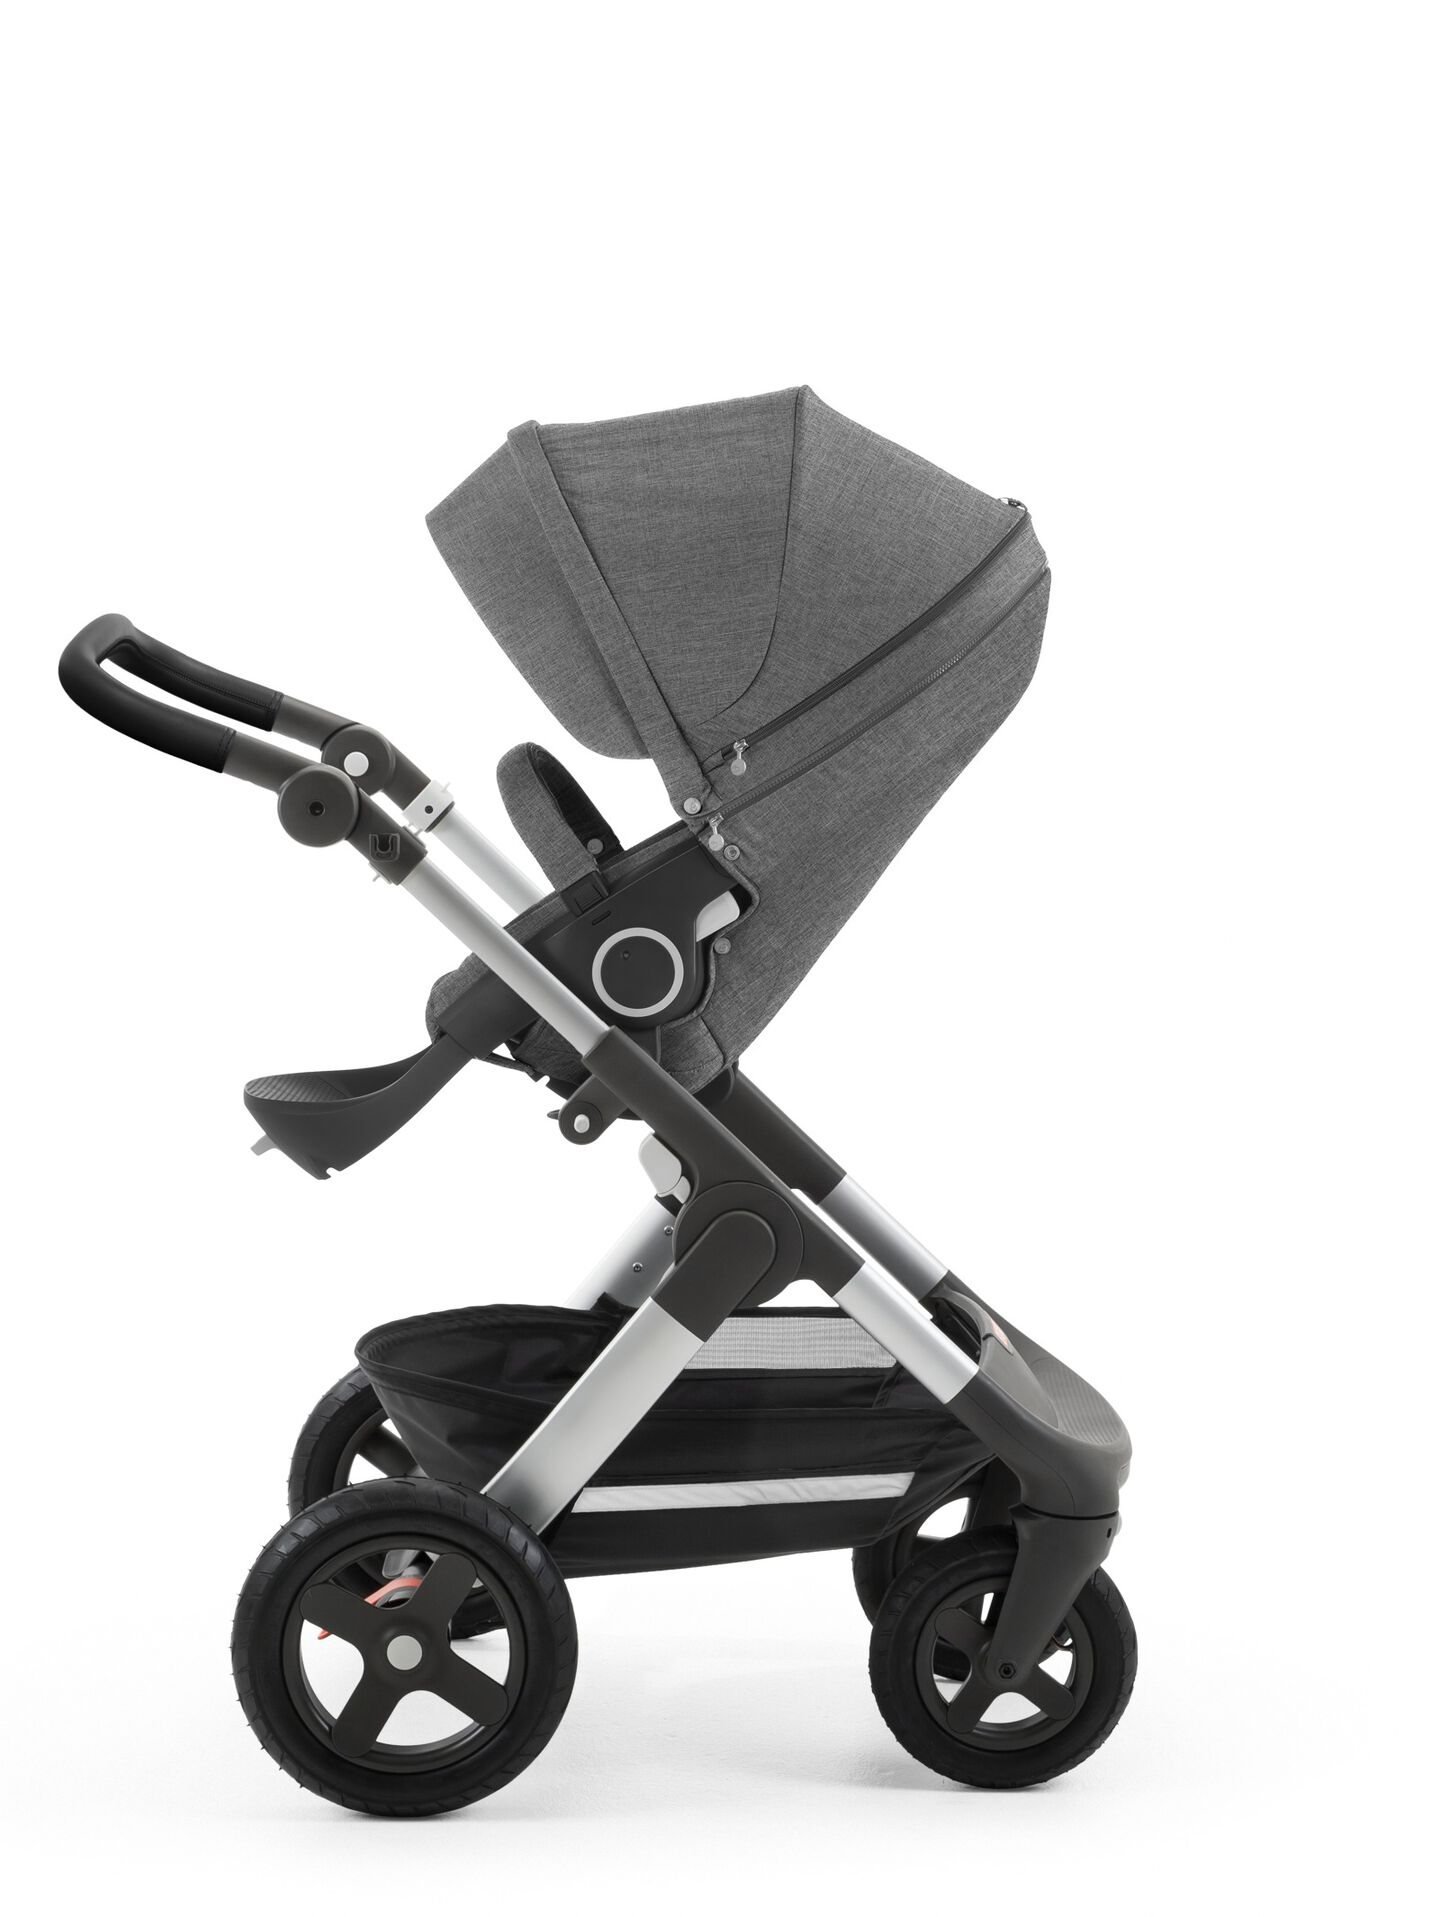 StokkeR TrailzTM With Silver Chassis And Stroller Seat Black Melange